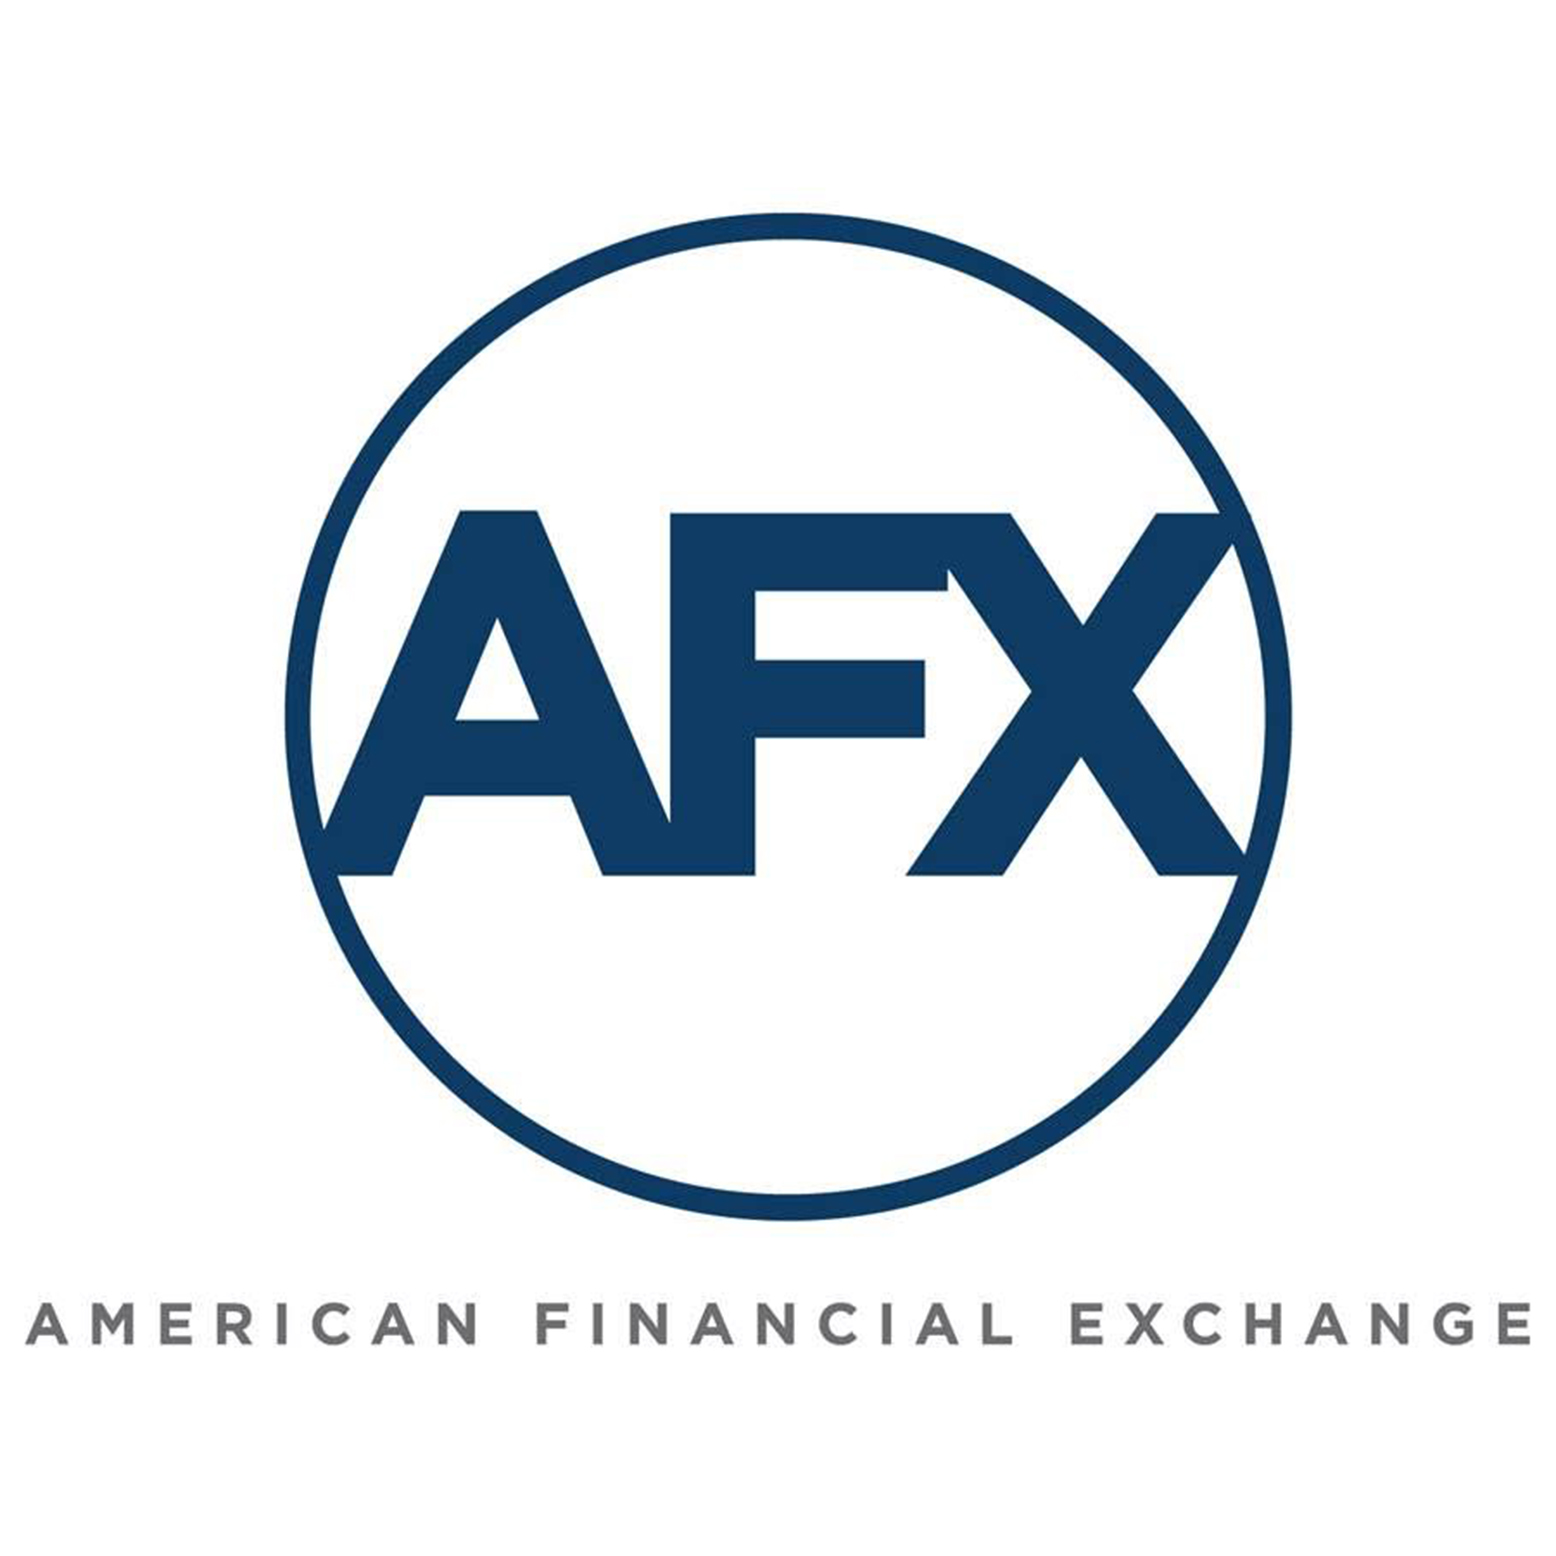 American Financial Exchange